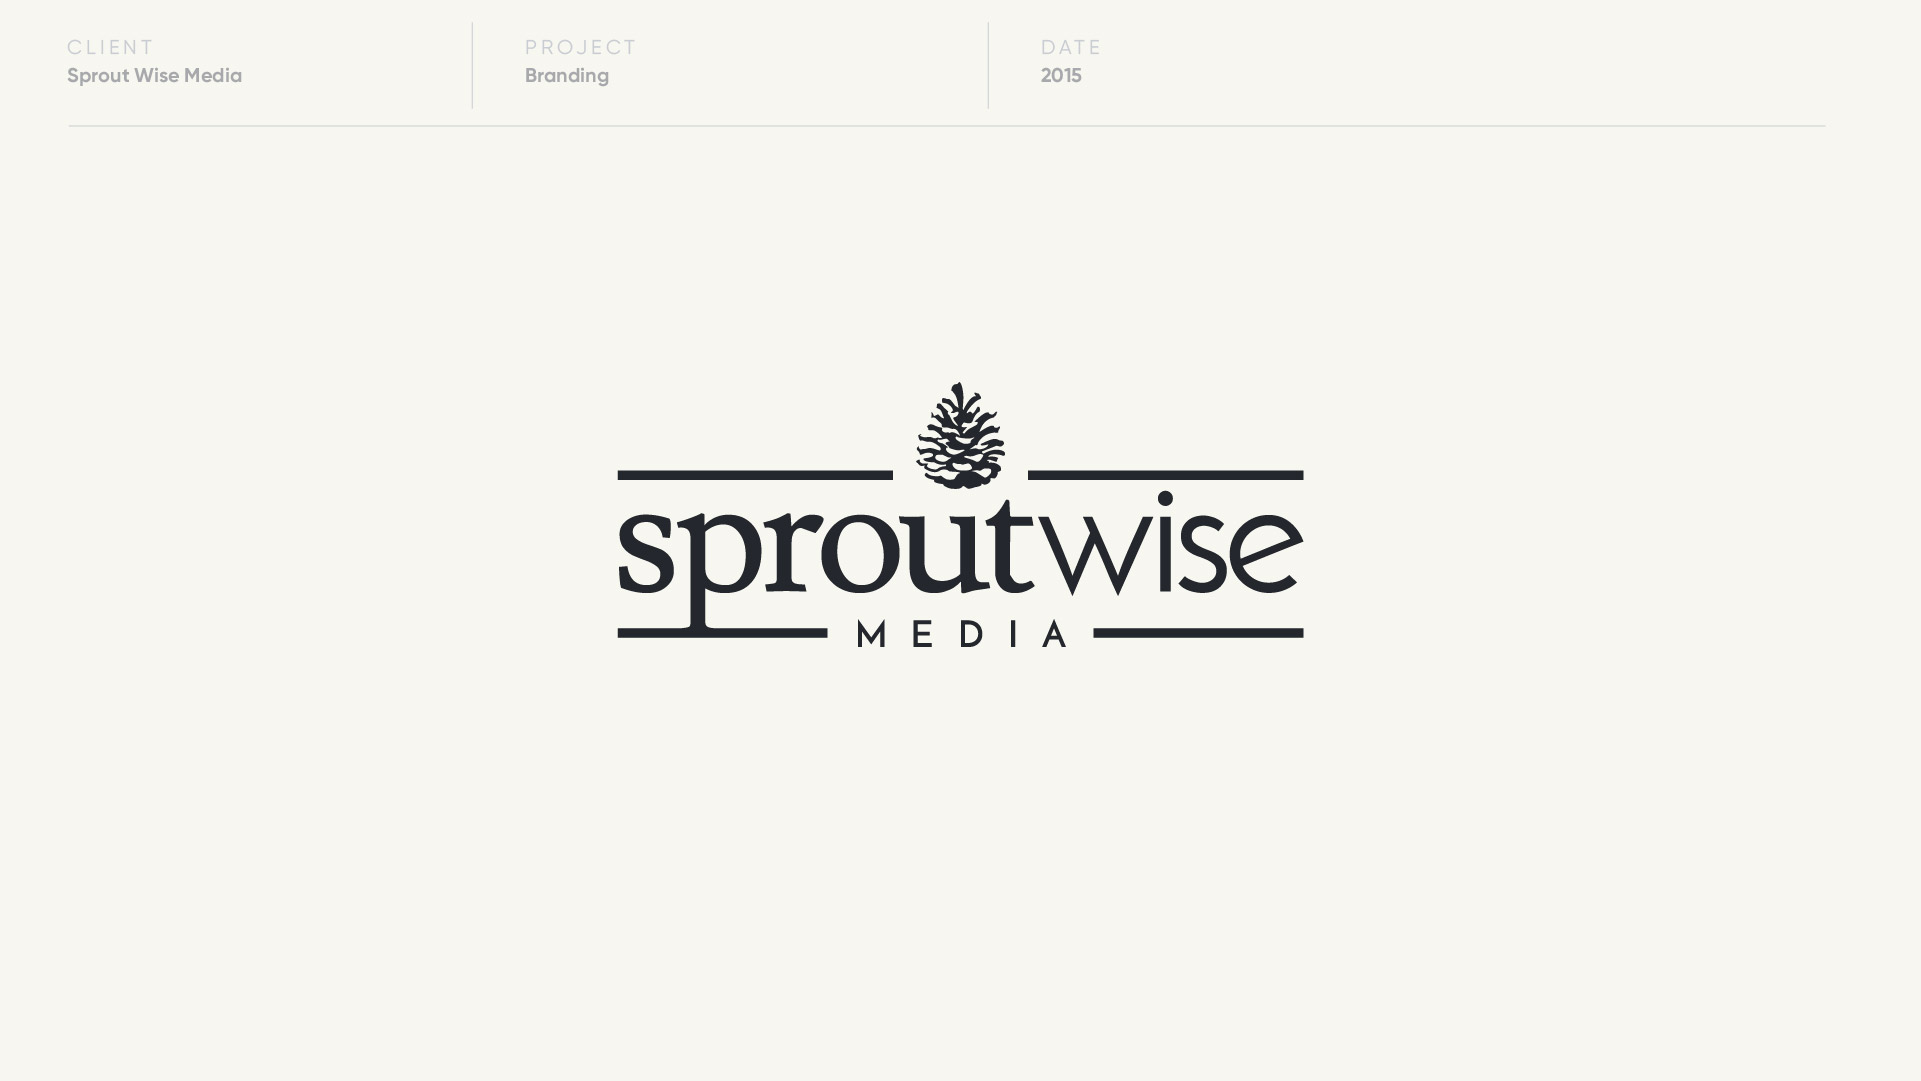 sprout wise media logo design by anthony mika